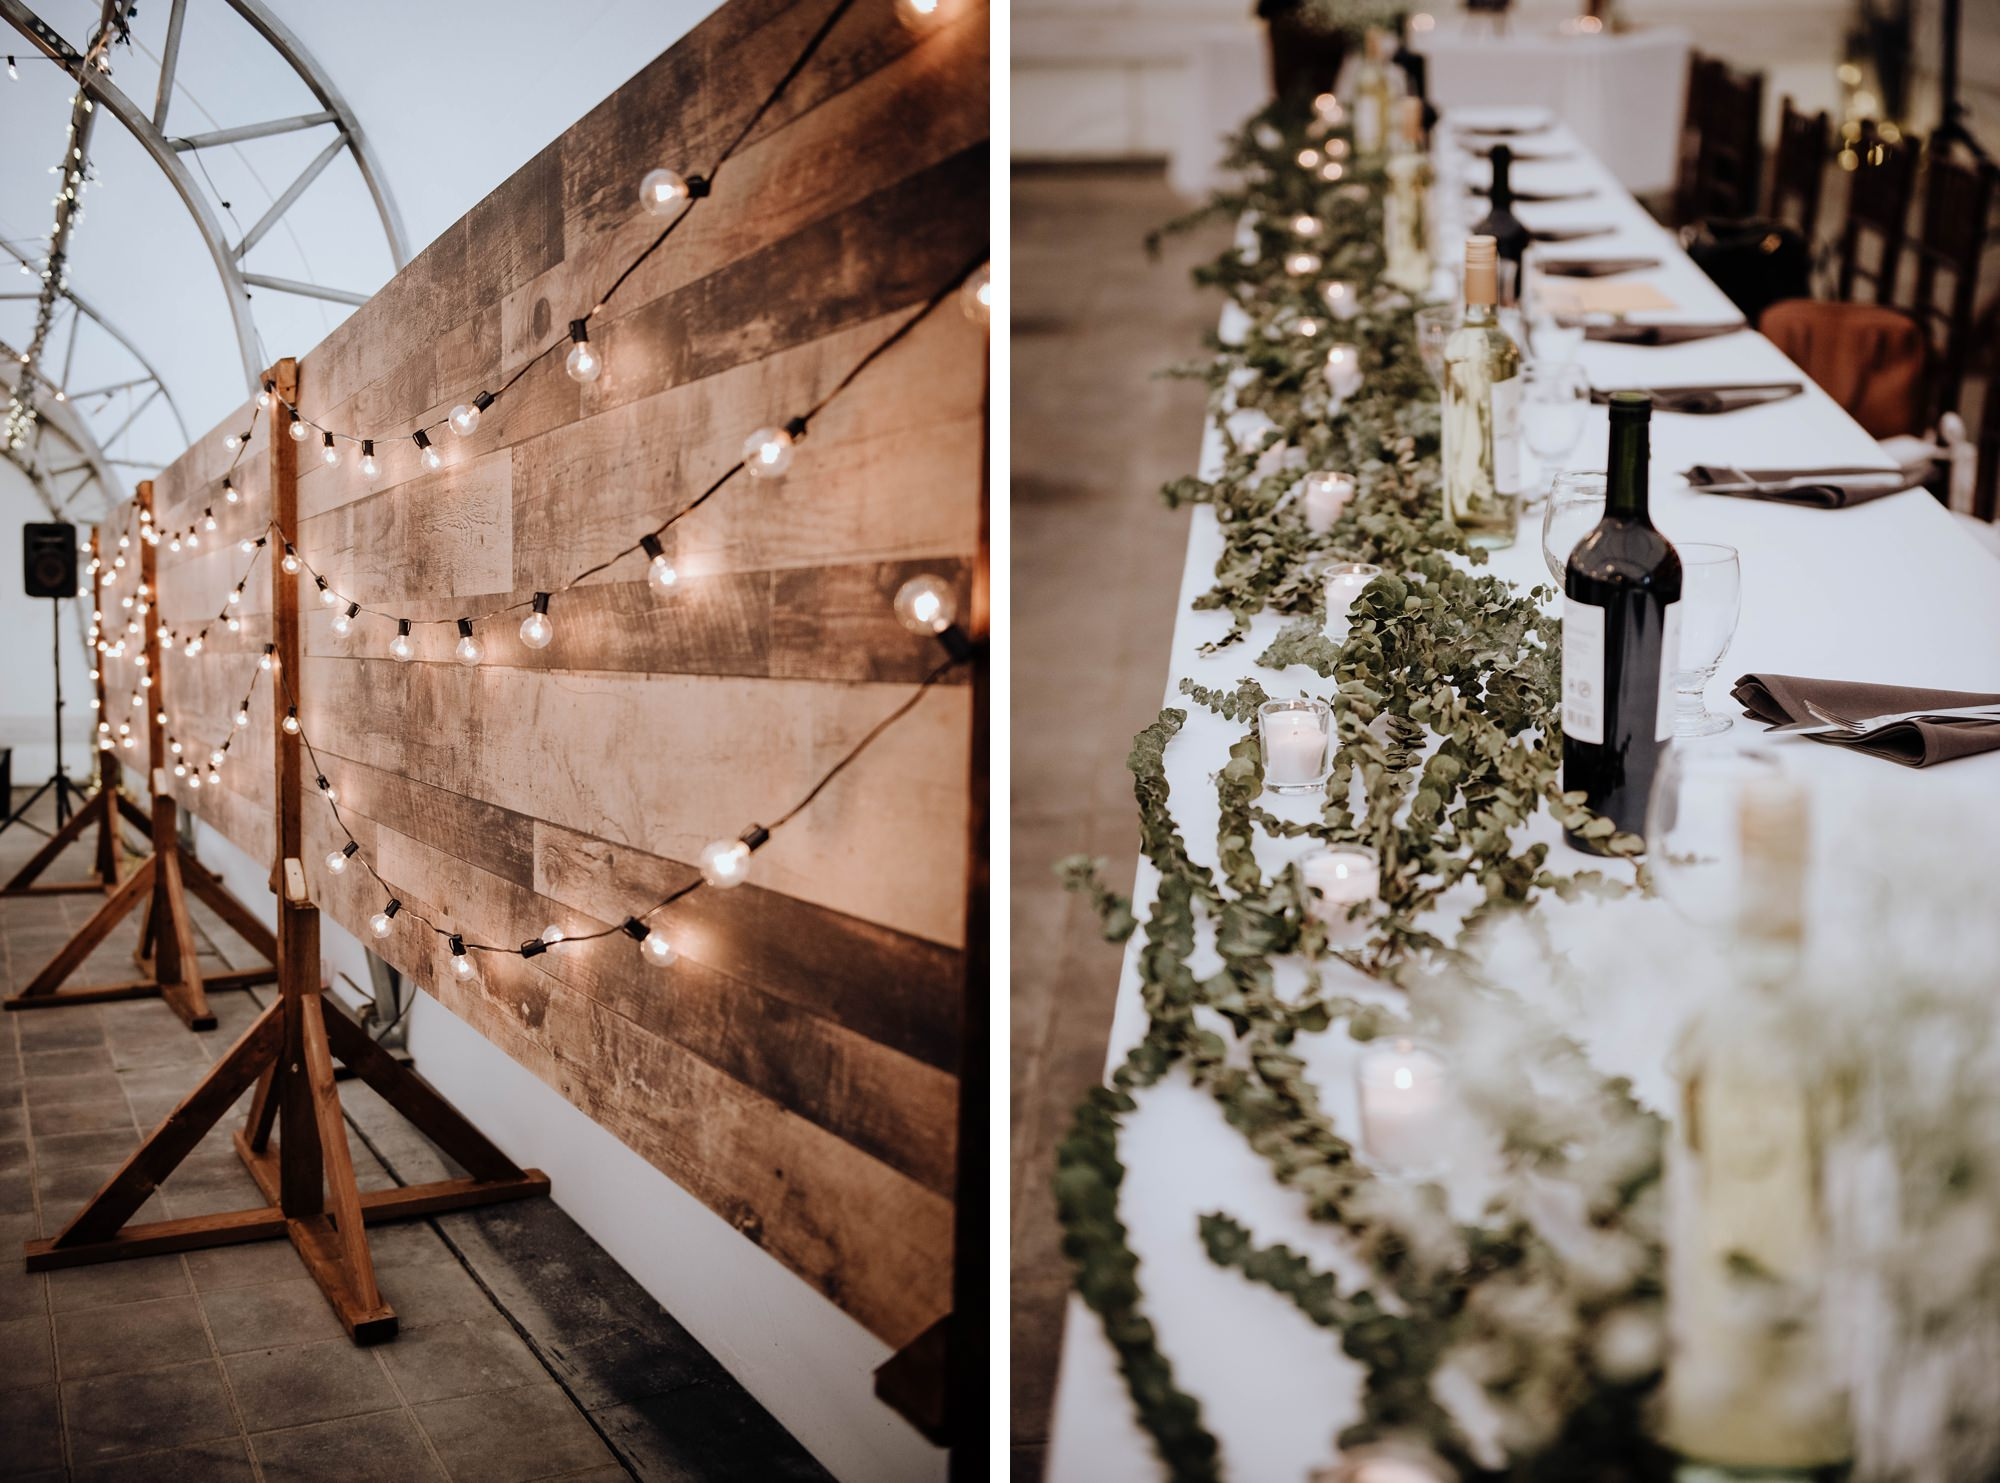 detail shots of beautiful decor at Calgary golf club wedding captured by Calgary wedding photographer